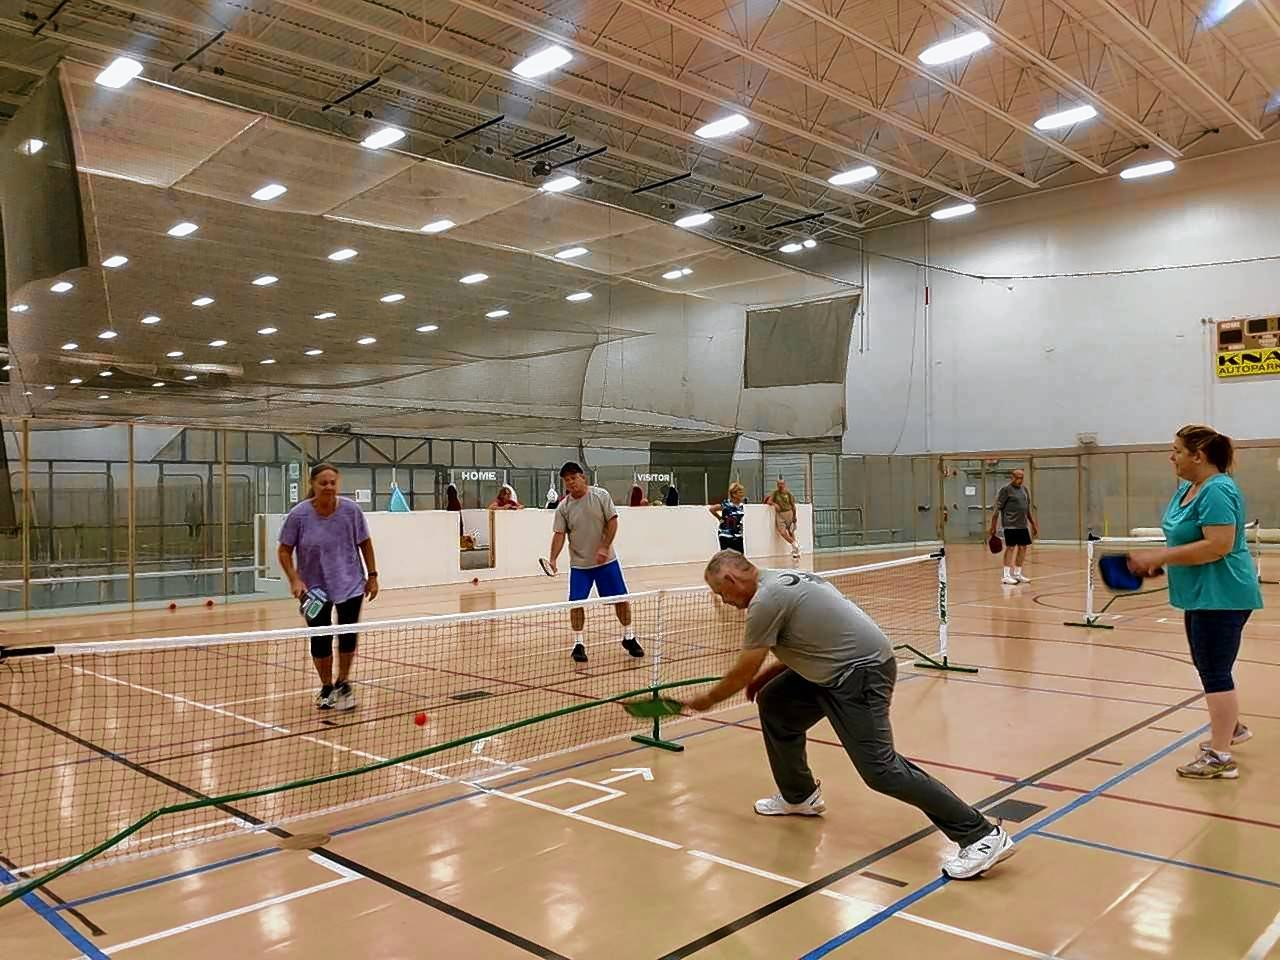 Courtesy of Sue MorrisAmy McGuan of Libertyville, left, teams with Greg Burgh of Grayslake at the net against Bill Morris of Grayslake and Cathy Freuger of Lake Villa during a pickleball match Wednesday at the Libertyville Sports Complex.